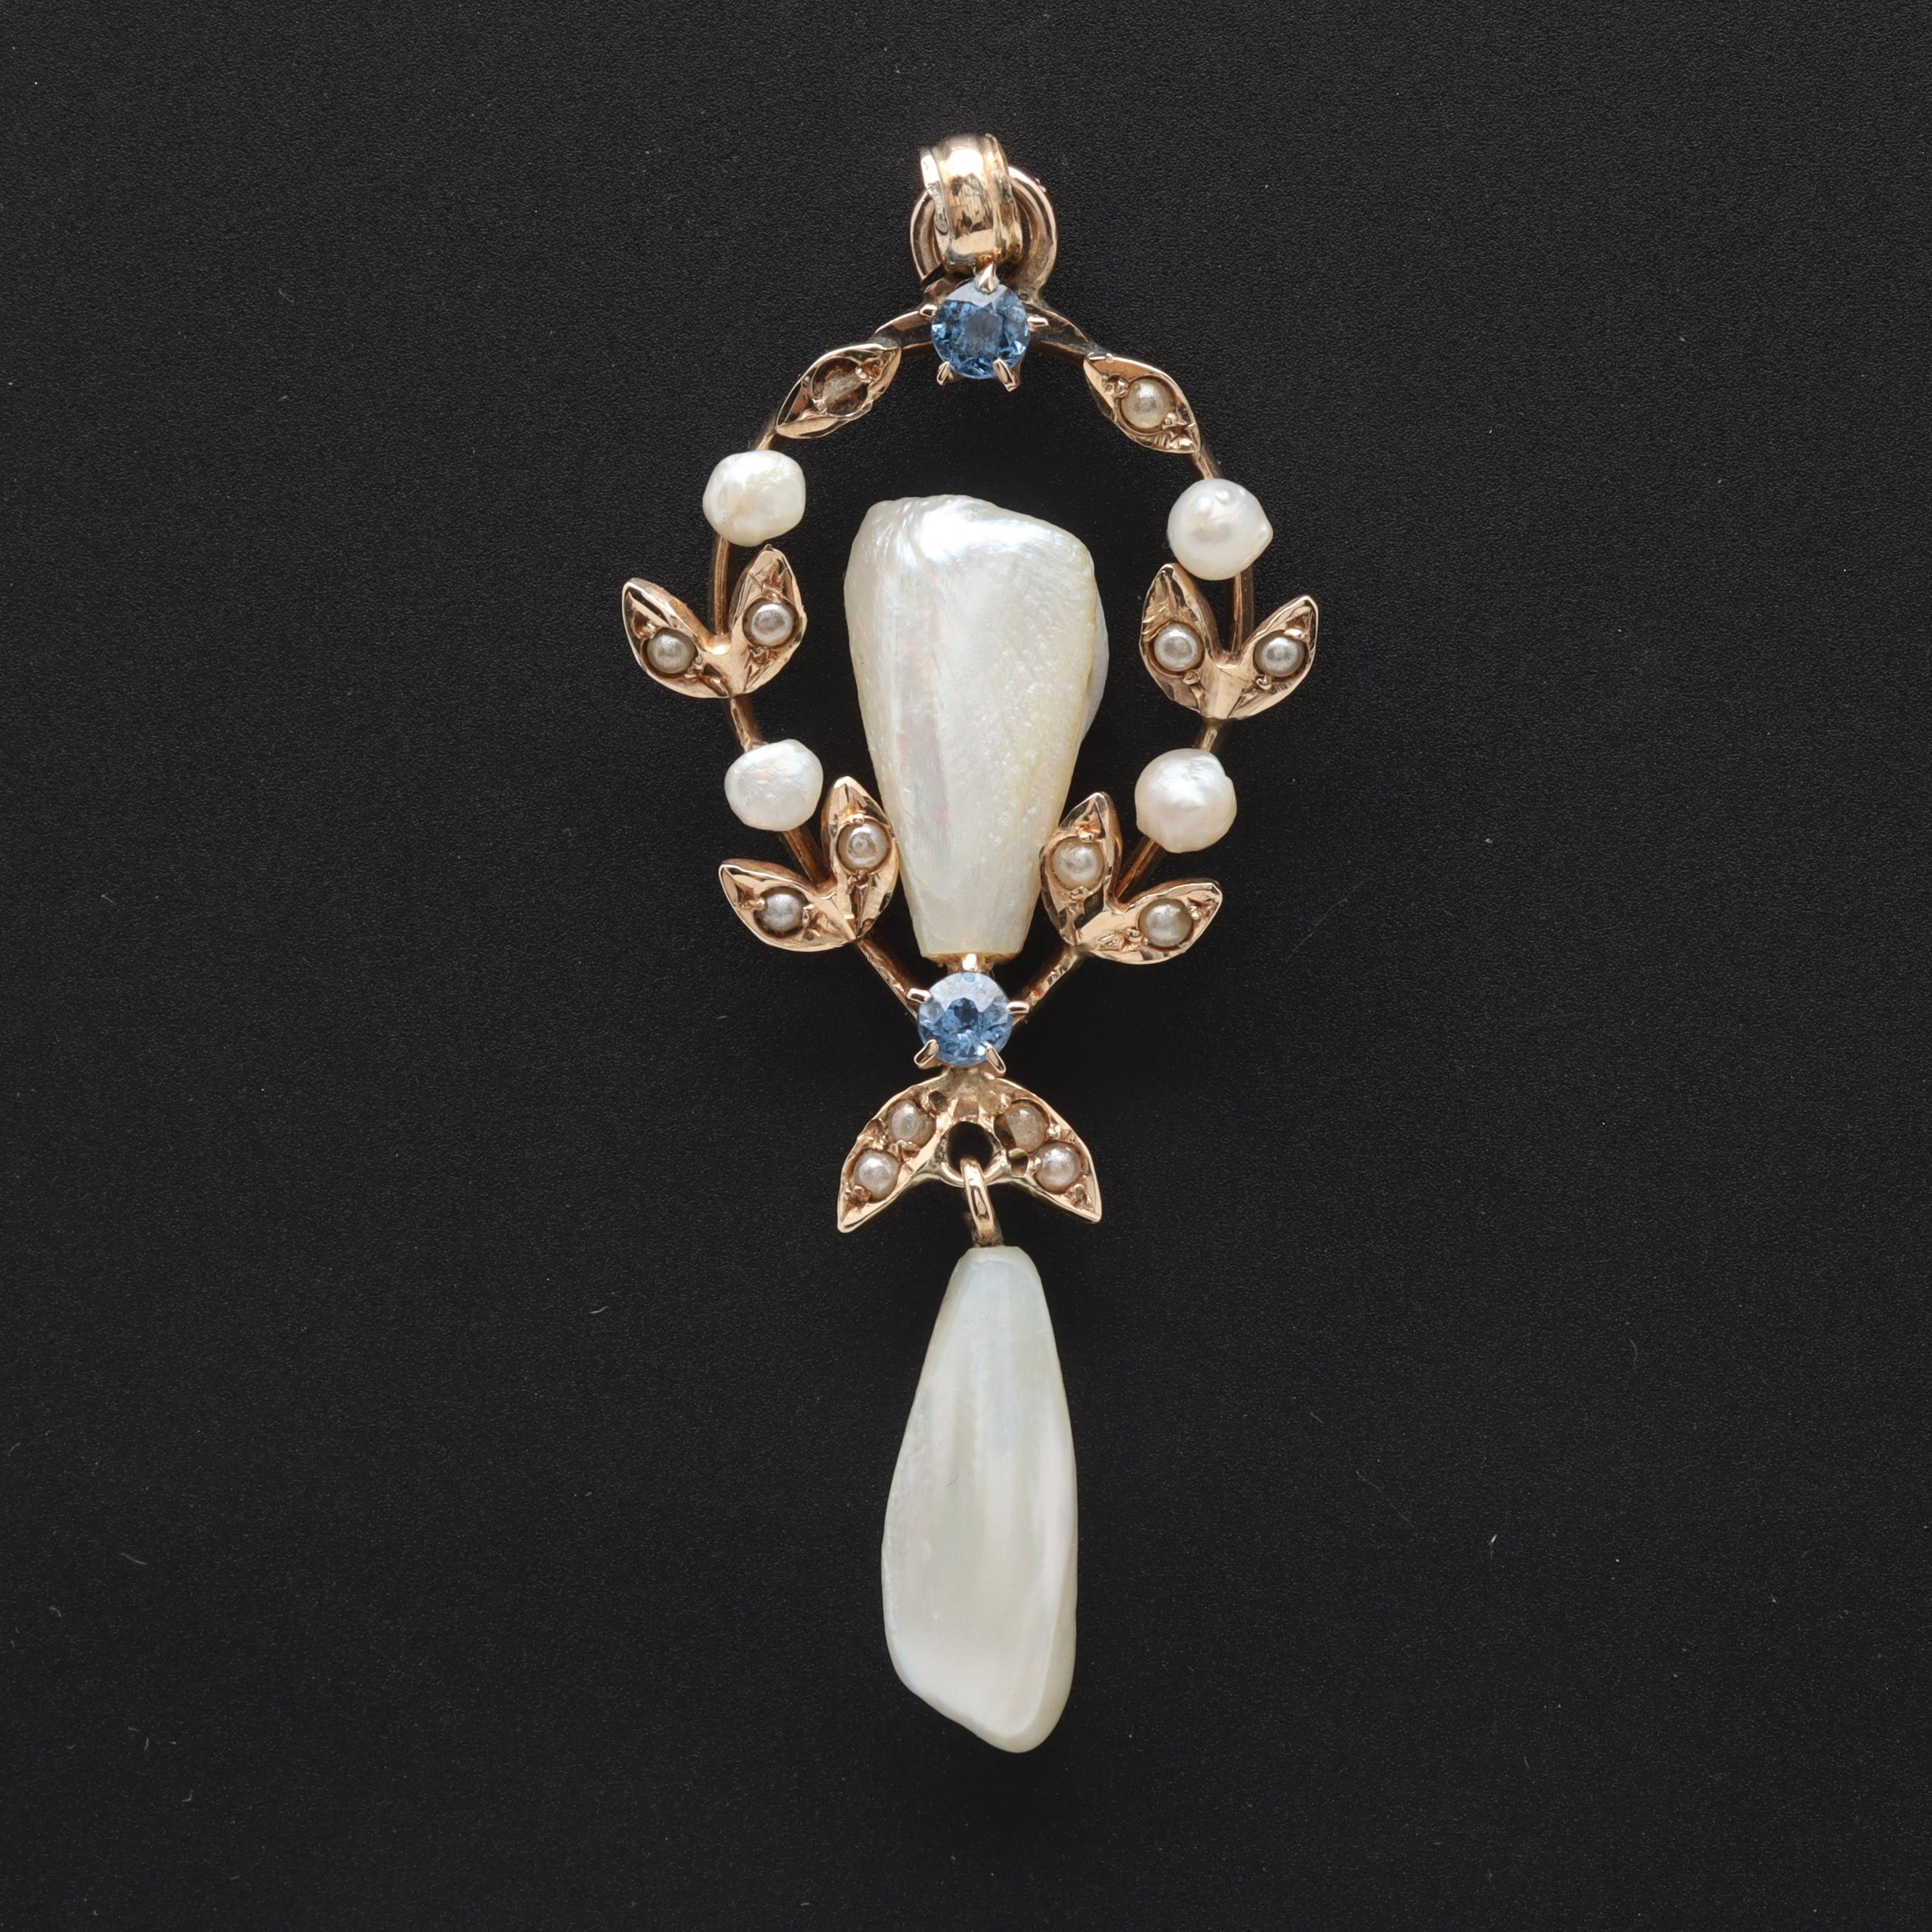 Circa 1910 14K Yellow Gold Cultured Pearl, Seed Pearl and Blue Sapphire Pendant